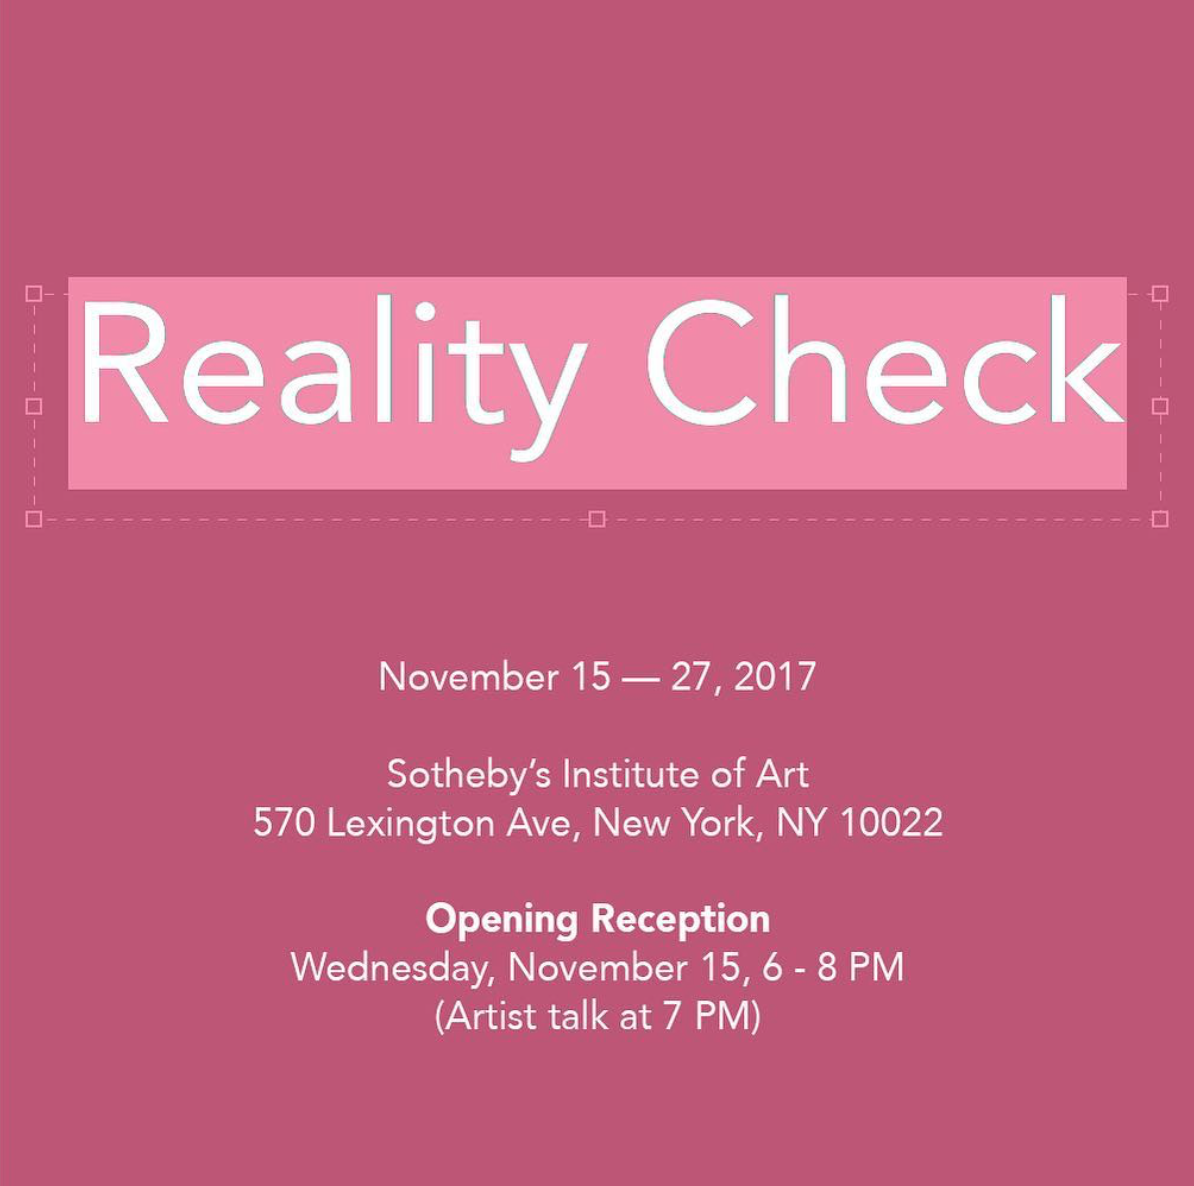 Reality CheckAt Sotheby's Institute of Art Curated by Natalie Ng and Hyun Lee. -